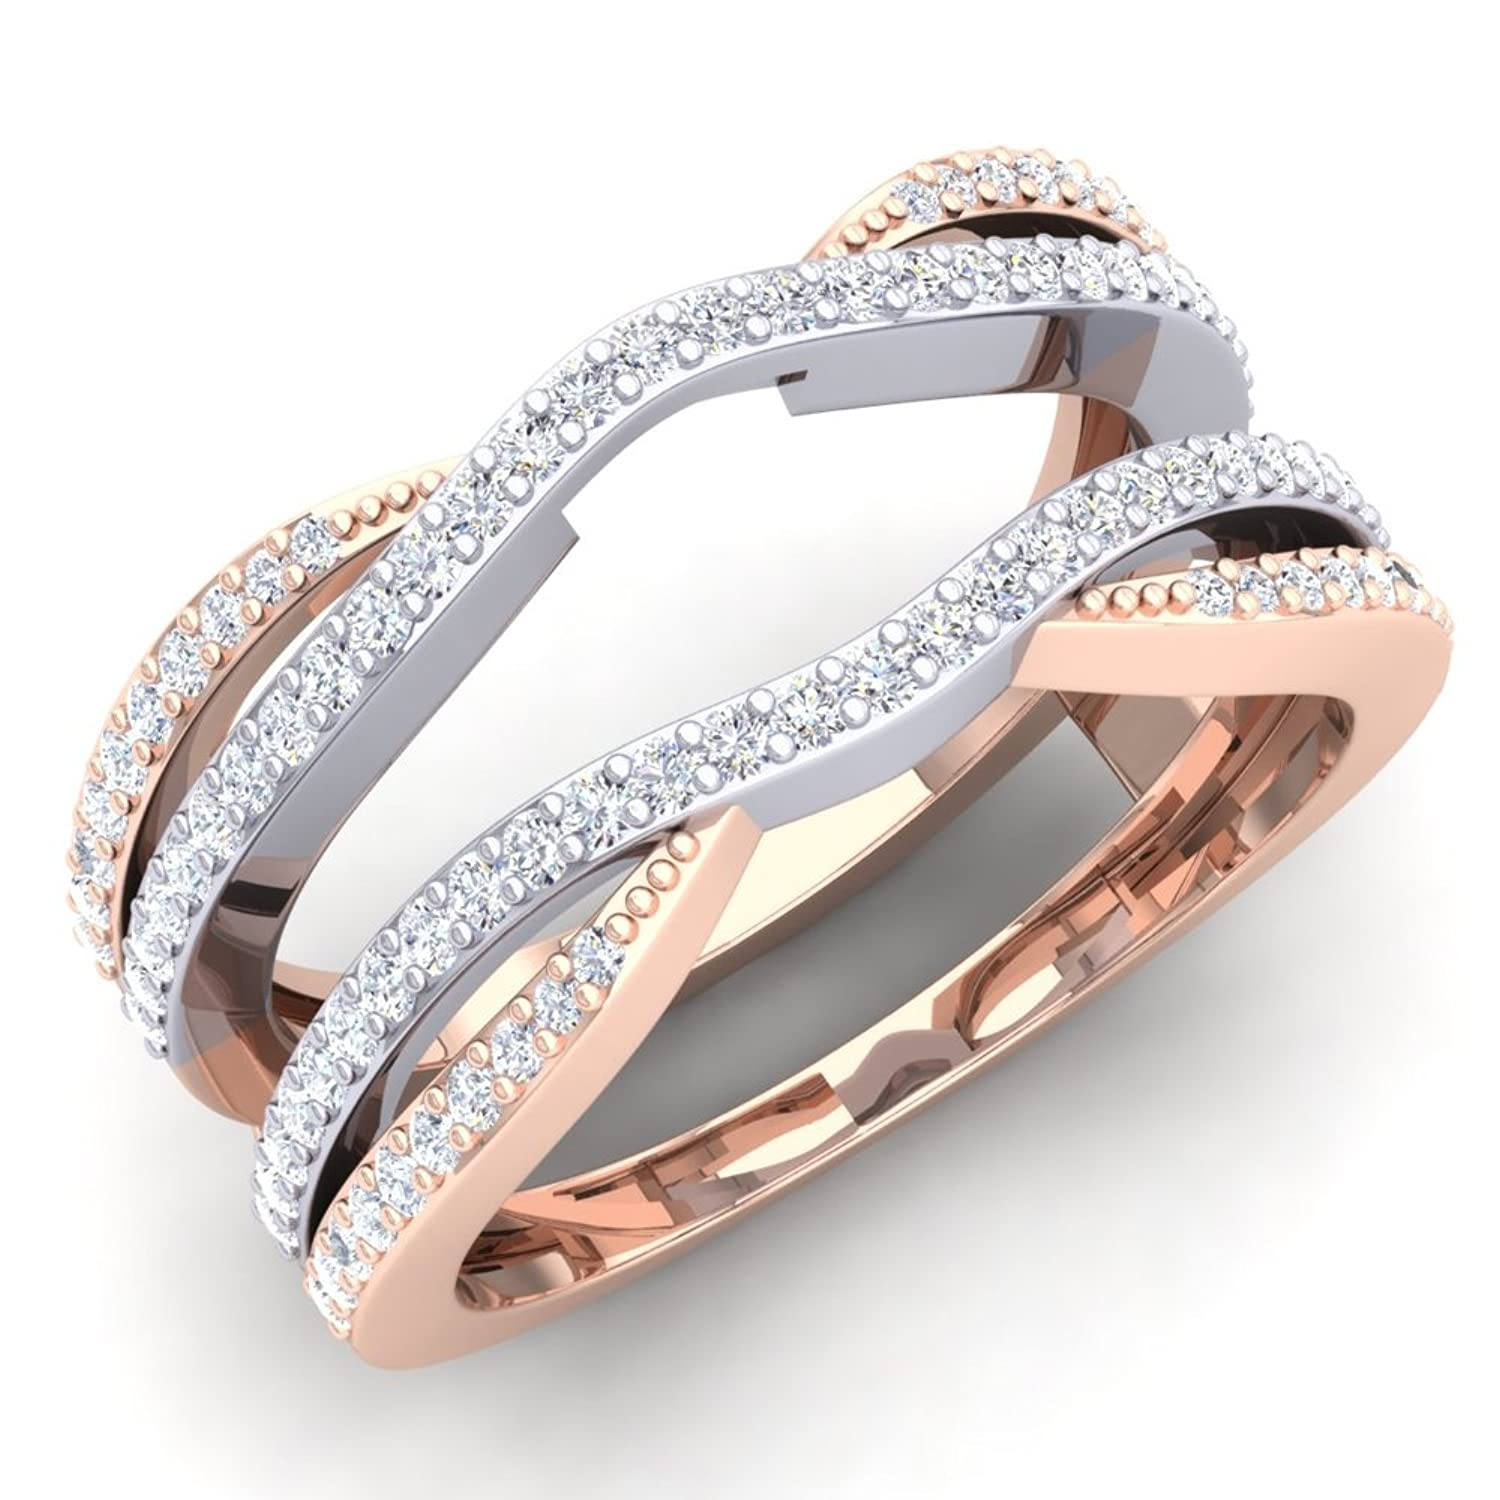 w c enhancers rings solitaire in t gold enhancer white circle diamond wedding frame jewellers v peoples